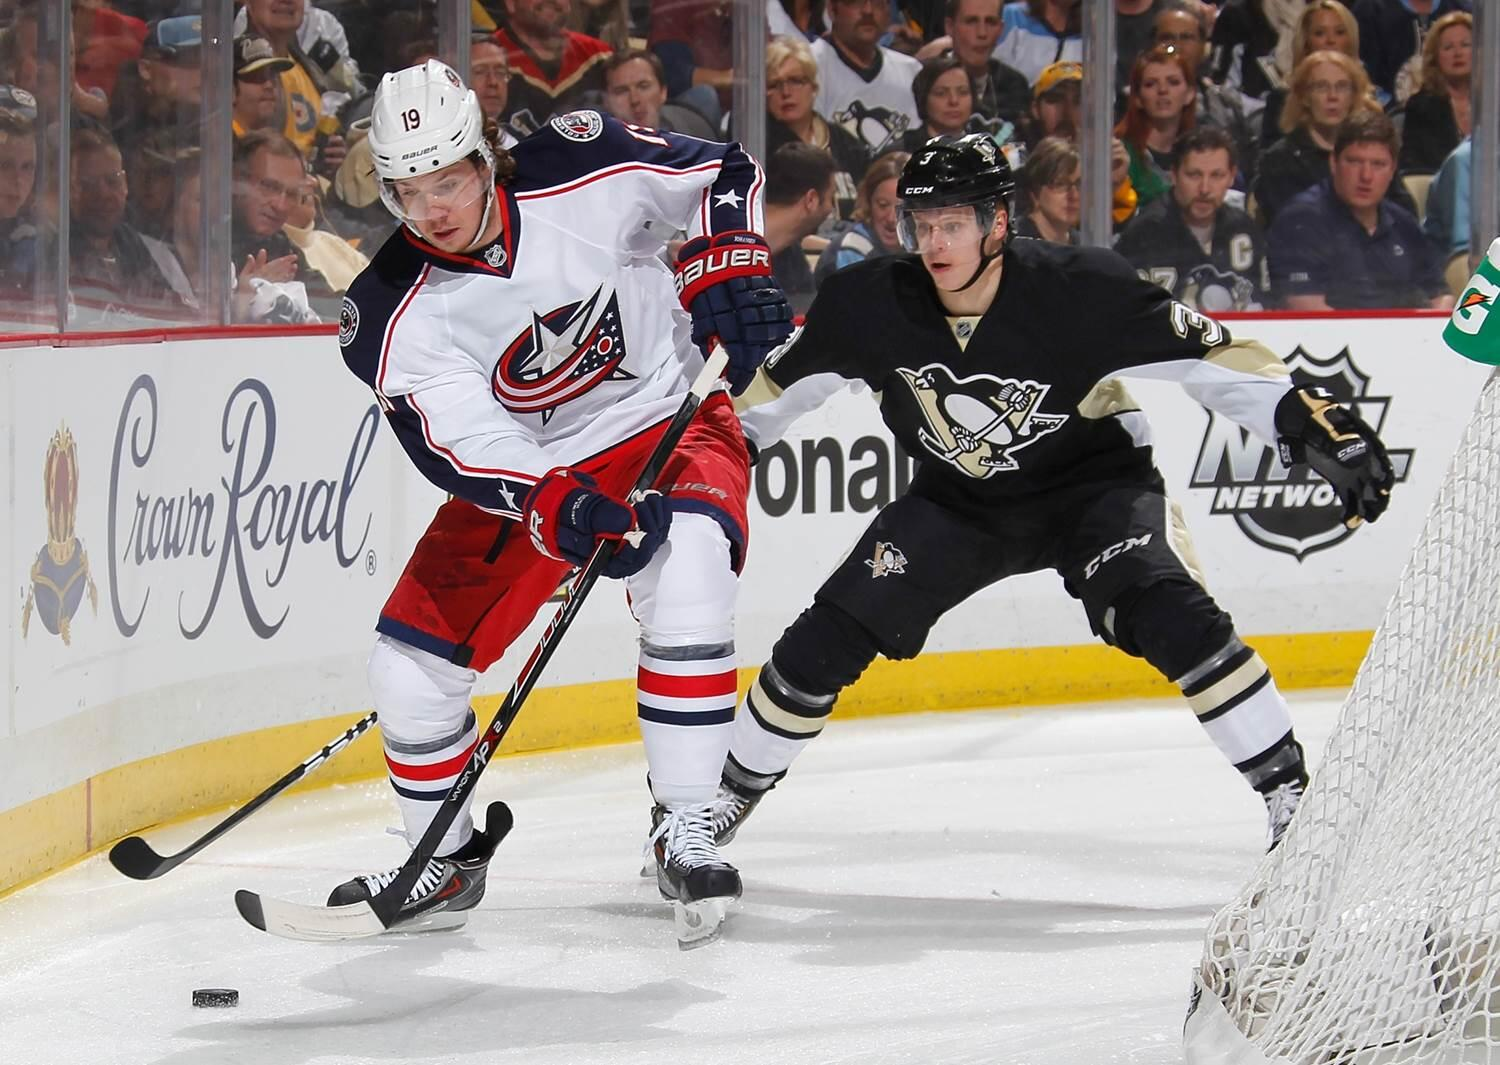 The @BlueJacketsNHL & @Penguins are battling again, tied 1-1 after 40 min. Who will step up for his team in the 3rd? http://t.co/rhvcBa1rq1